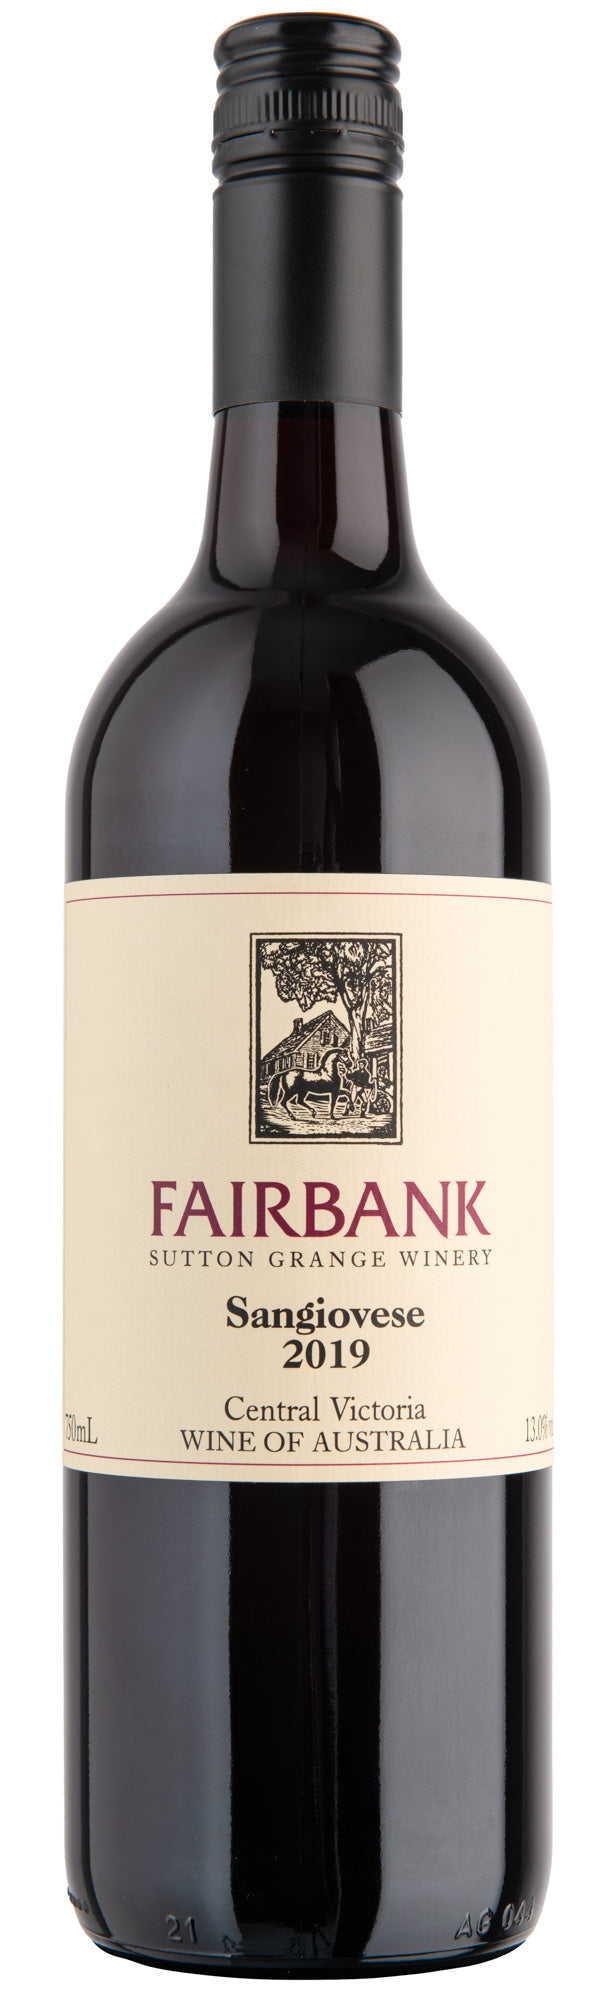 2019 Fairbank Sangiovese